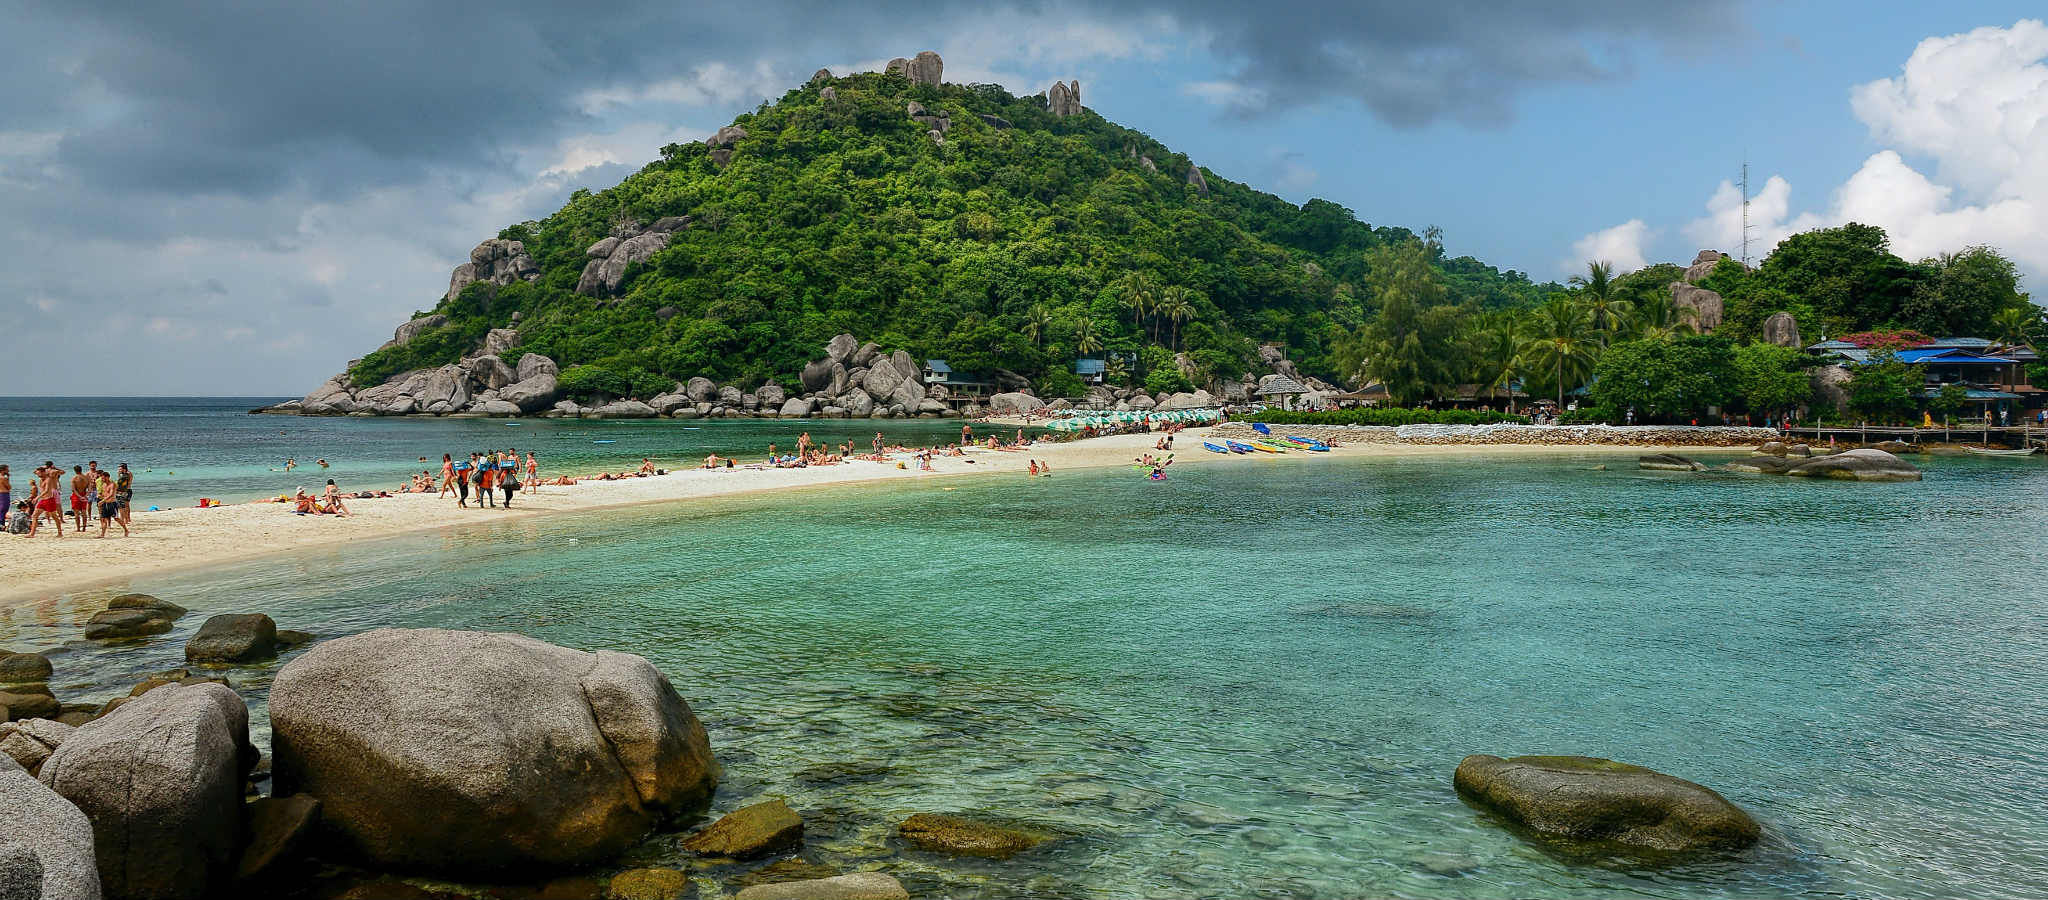 sand bank of Koh Nang Yuan